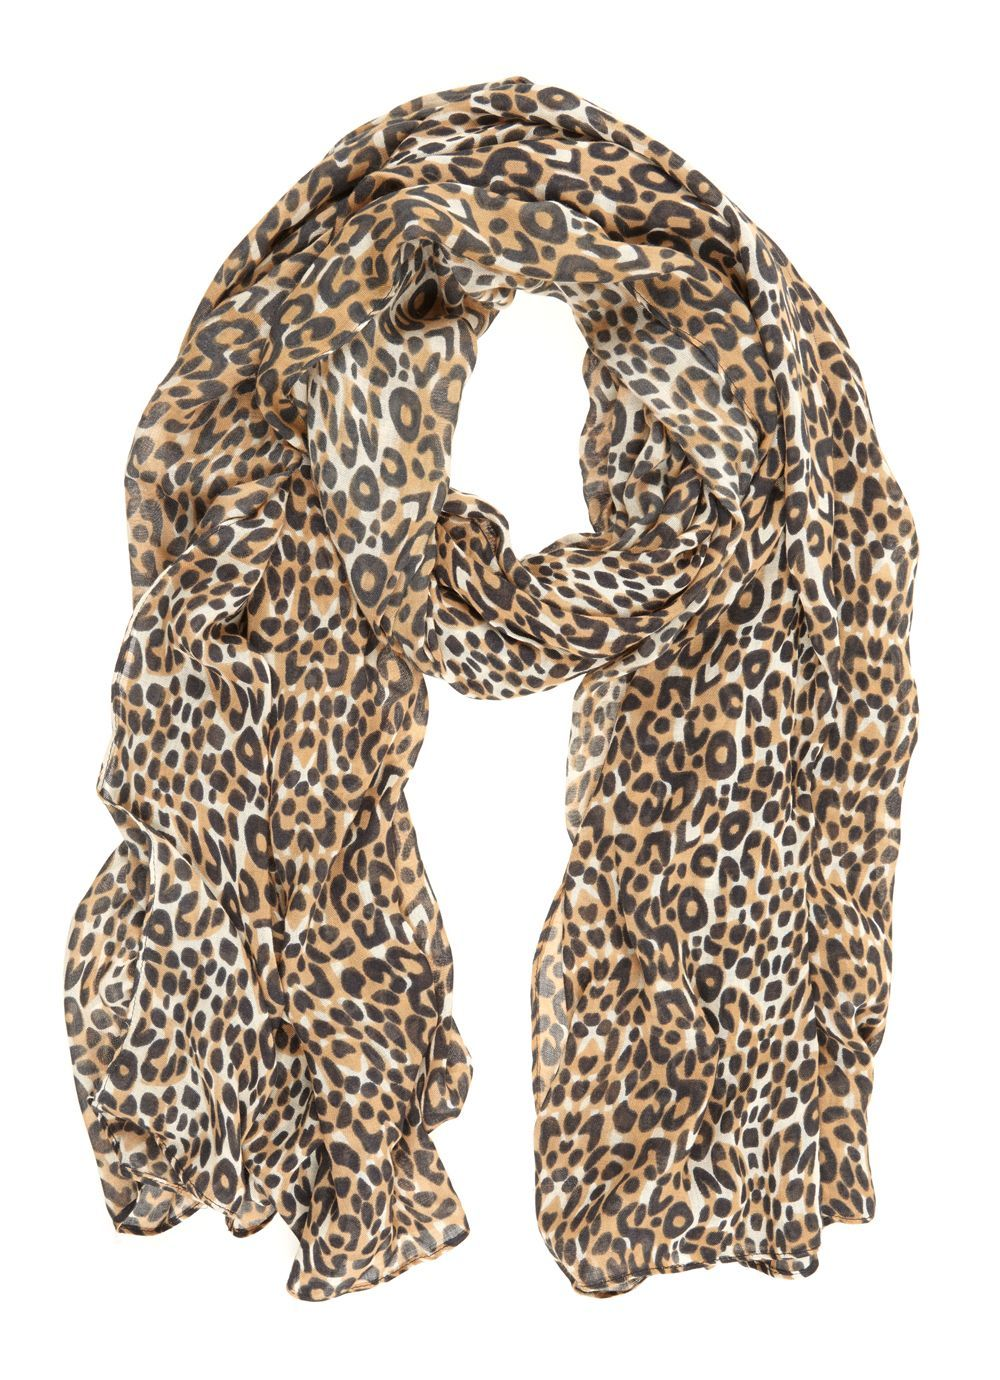 Animal Print Scarf, Multi Coloured - predominant colour: camel; secondary colour: black; occasions: casual, creative work; type of pattern: standard; style: regular; size: standard; material: fabric; pattern: animal print; season: a/w 2016; wardrobe: highlight